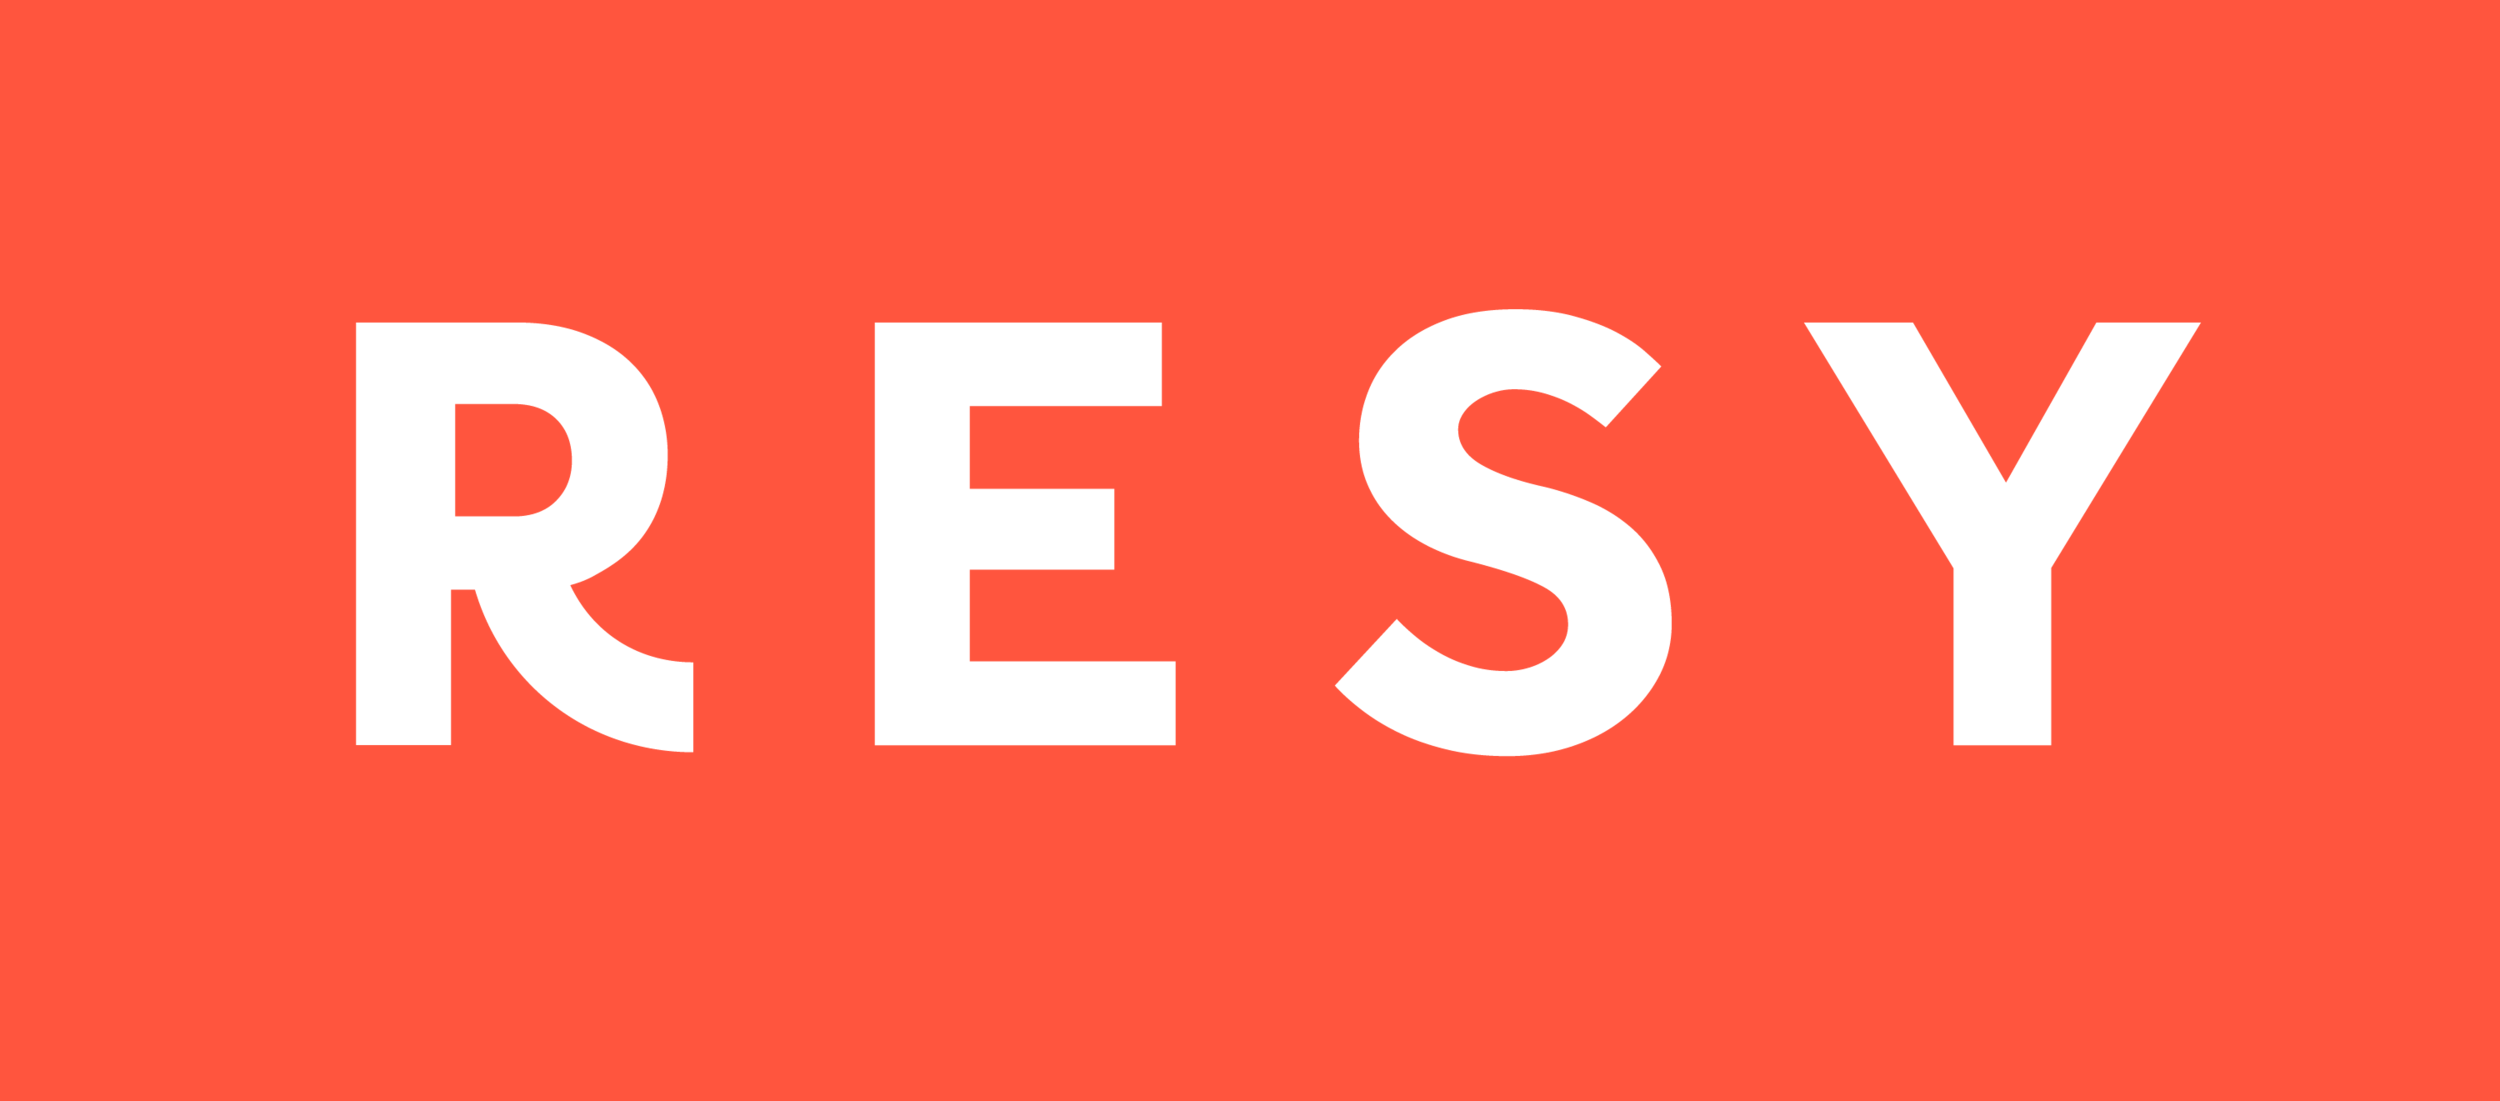 Resy_Box-Logo_Red.png